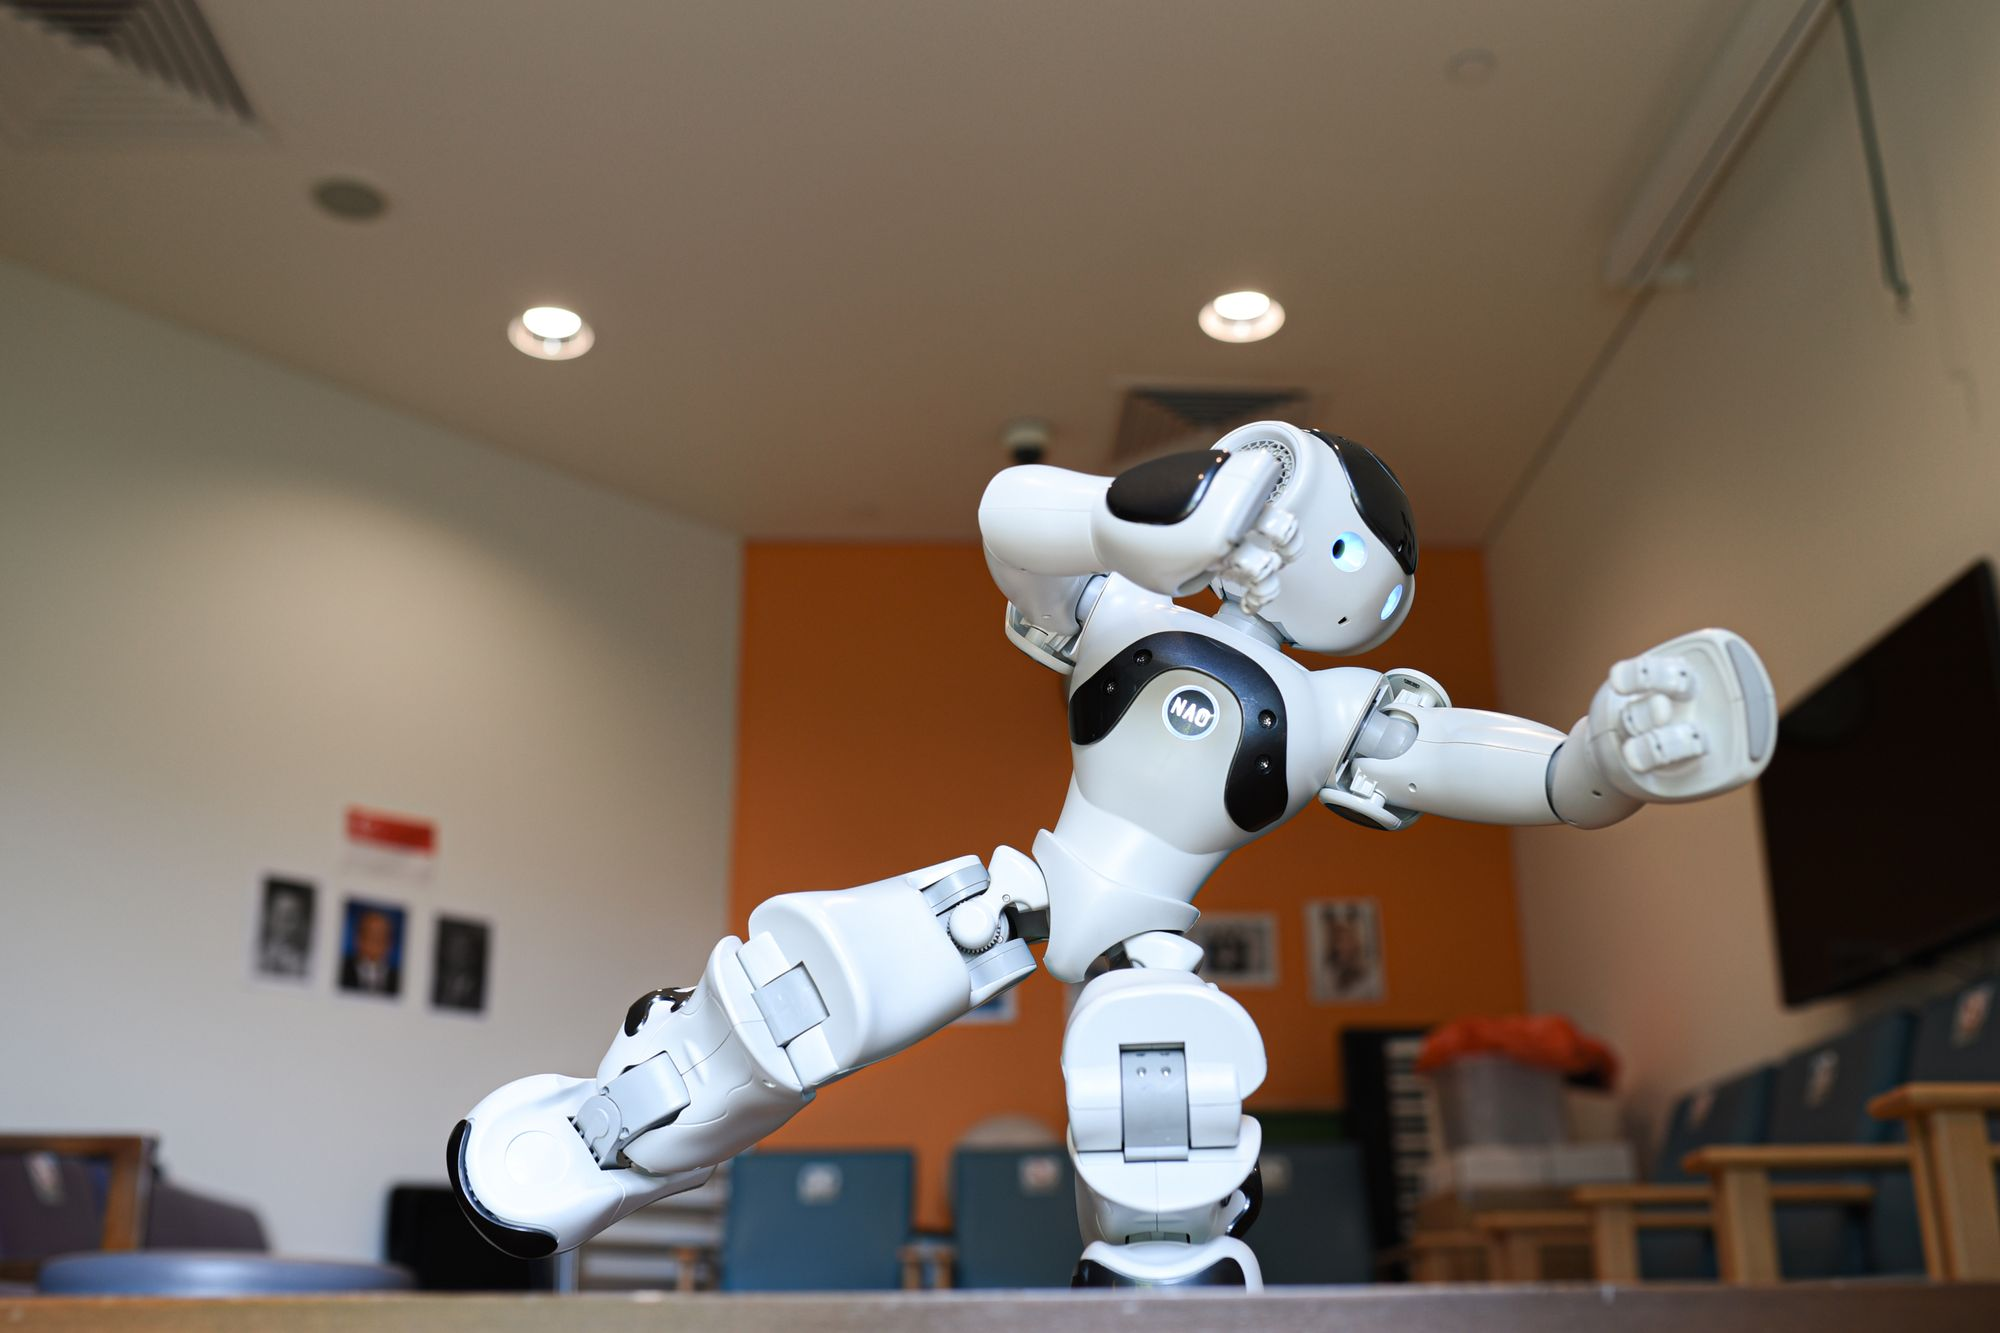 Nao robot used in therapy for seniors at Yishun Community Hospital in Singapore.